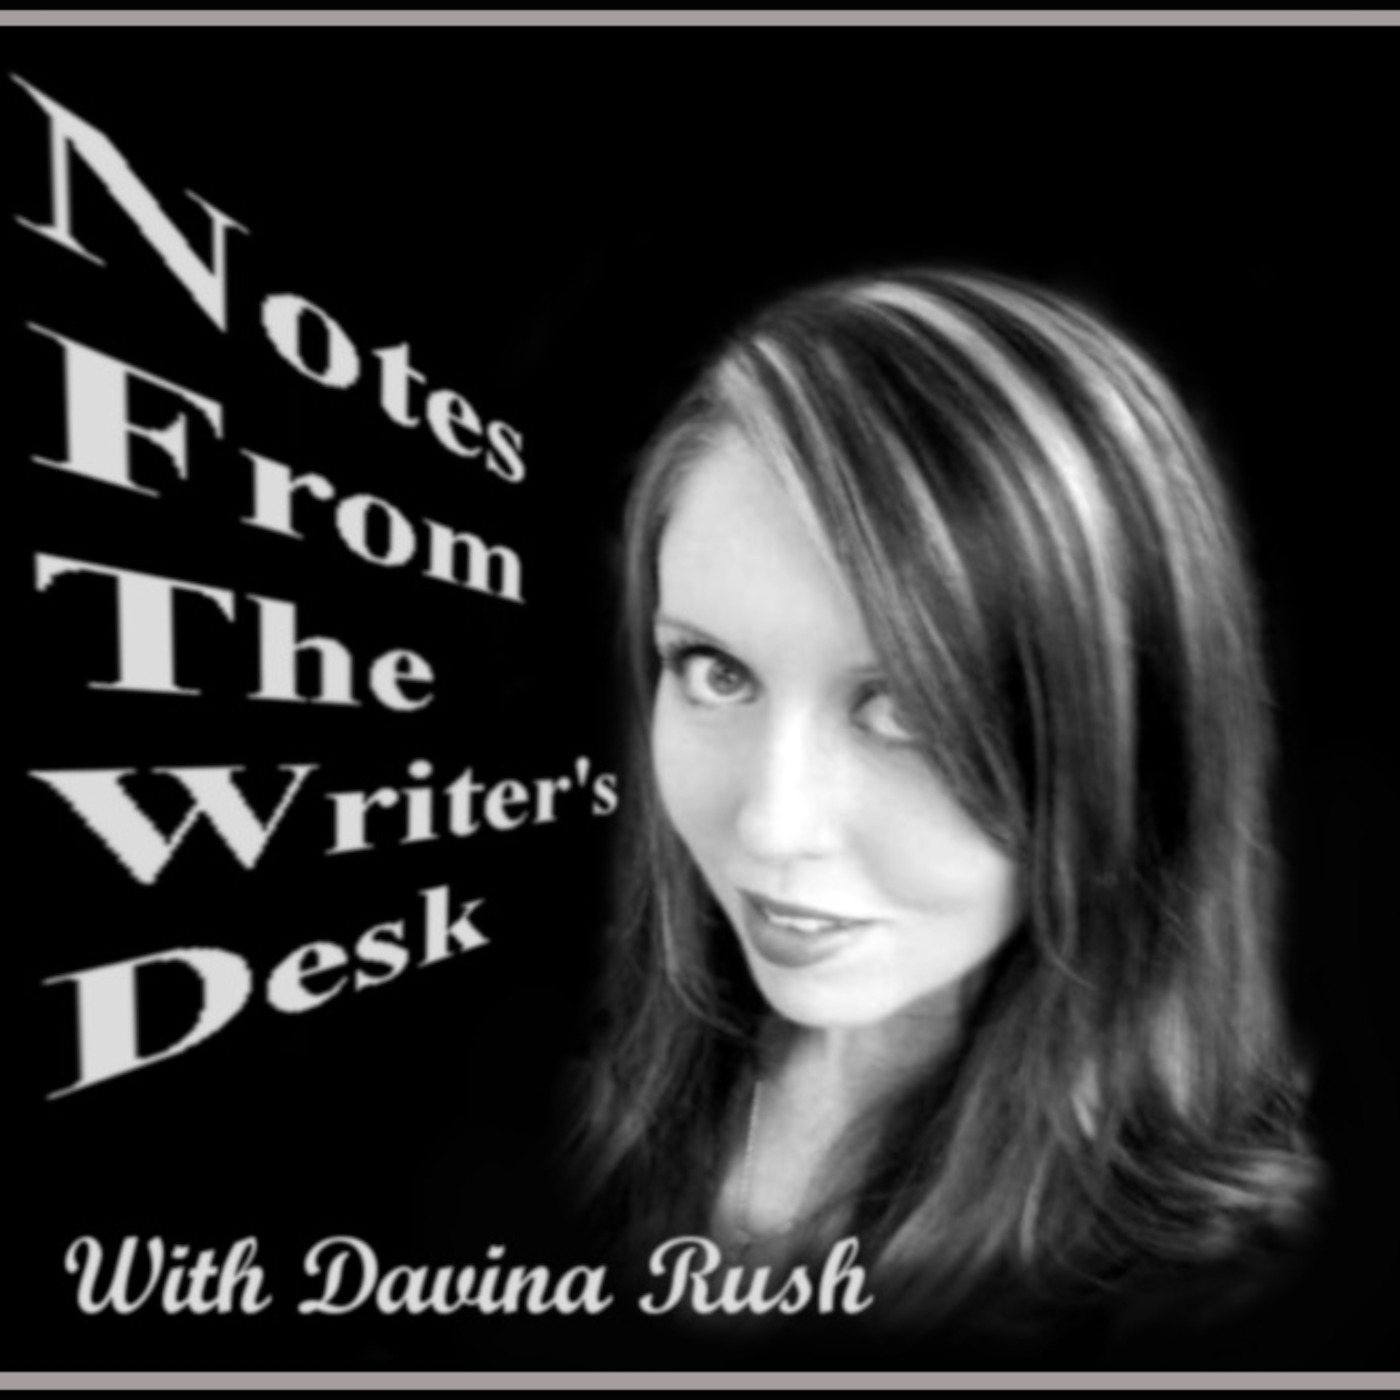 Notes from the writer's desk